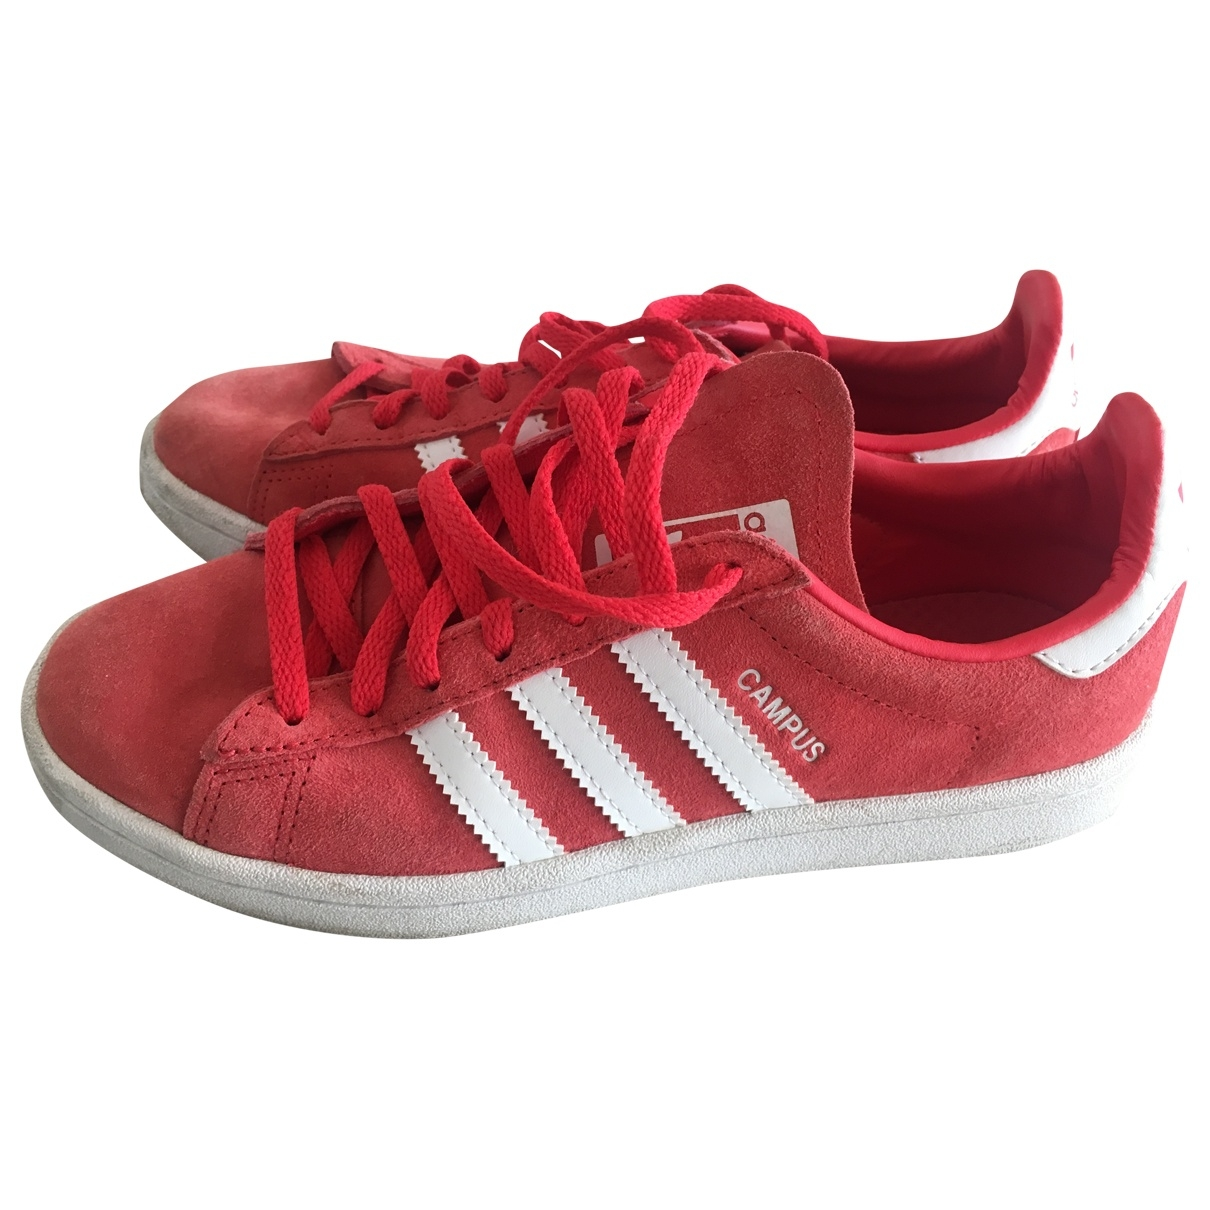 Adidas \N Red Leather Trainers for Women 38 EU